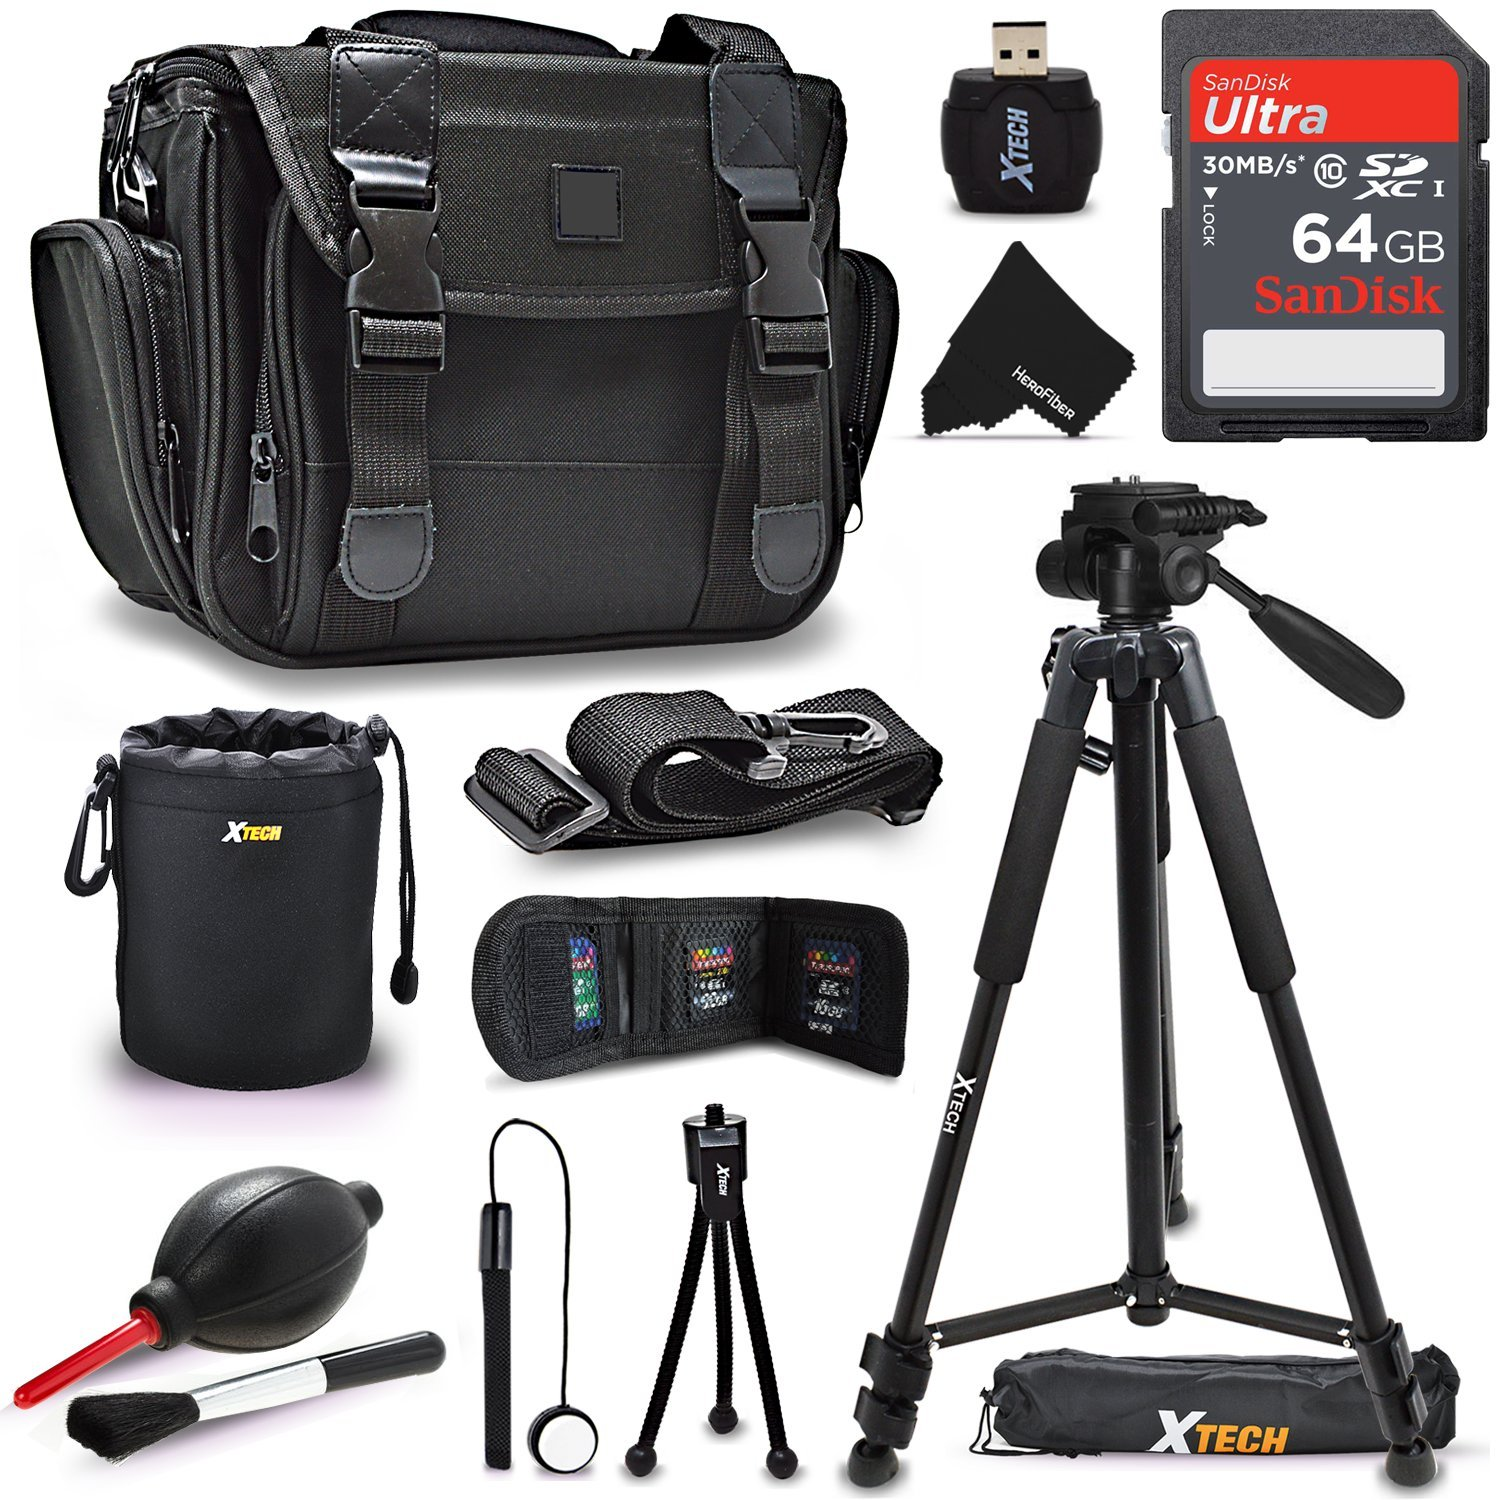 """Premium Well Padded Camera CASE / BAG and Full Size 72"""" inch TRIPOD Accessories KIT f/ Canon EOS Rebel T7i T6i T6S T5i T5 EOS 80D 70D 60D 7D 6D 5D, 7D Mark II 760D 750D (64GB Accessories Kit)"""